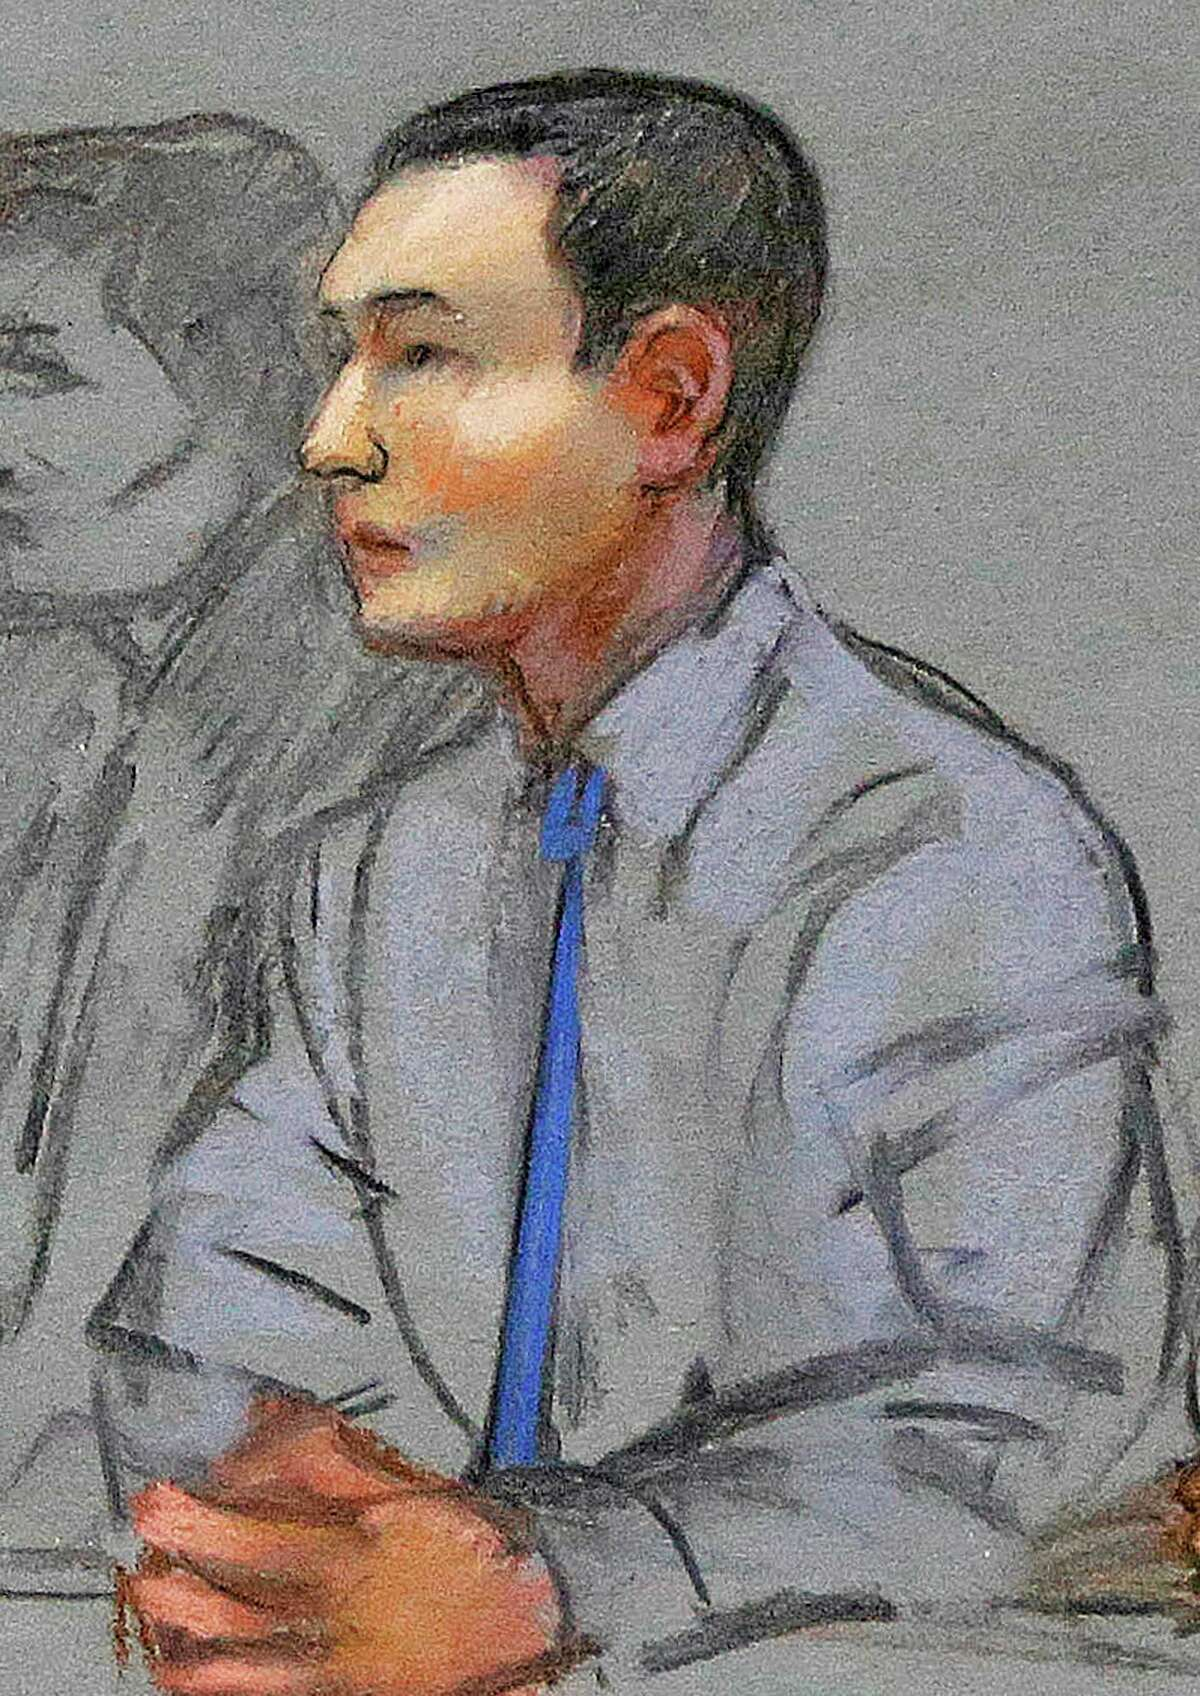 FILE - In this May 13, 2014 file courtroom sketch, defendant Azamat Tazhayakov, a college friend of Boston Marathon bombing suspect Dzhokhar Tsarnaev, sits during a hearing in federal court in Boston. His federal trial is set to begin Monday, July 7, 2014 in Boston on obstruction of justice charges. Tazhayakov, of Kazakhstan, is accused with another friend of removing items from Tsarnaev's dorm room, but is not charged with participating in the bombing or knowing about it in advance. (AP Photo/Jane Flavell Collins, File)